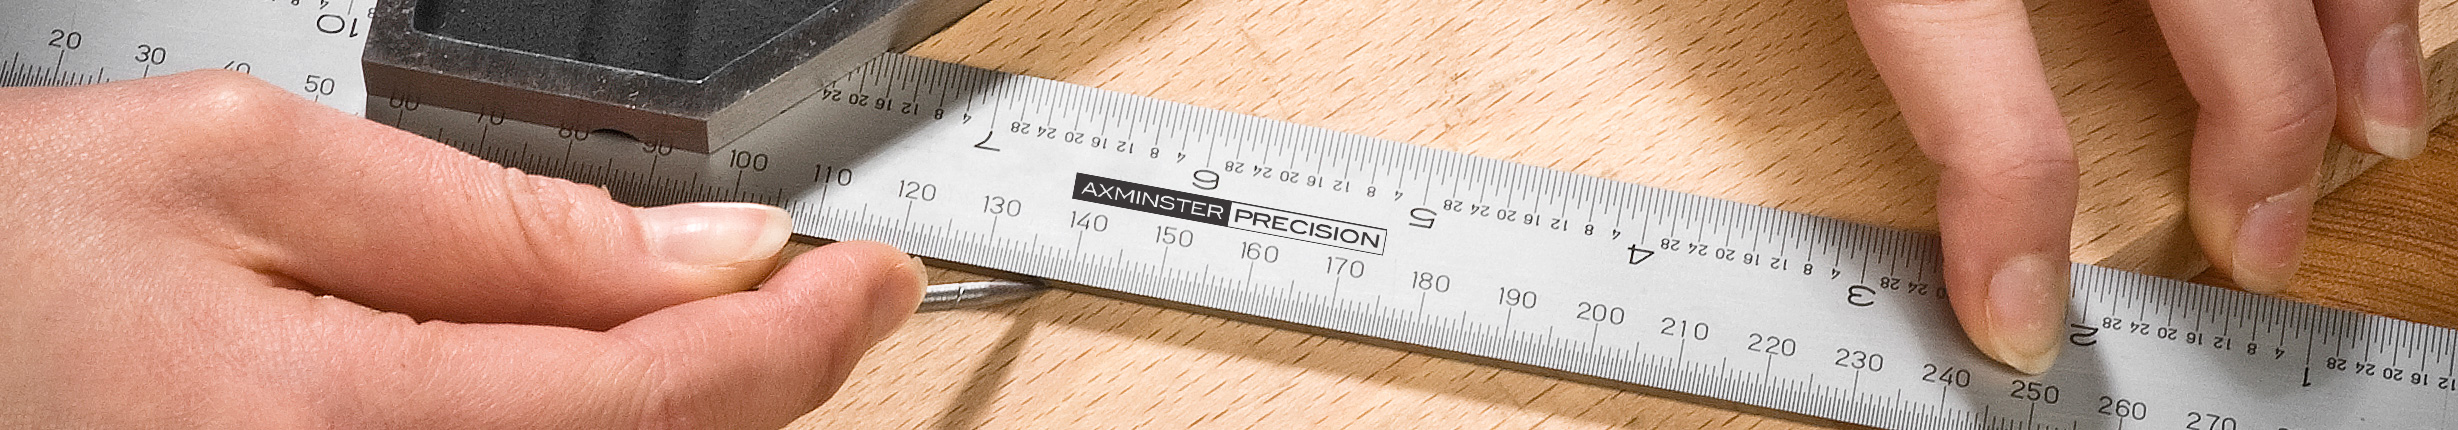 Introducing Axminster Precision & Axminster Workshop